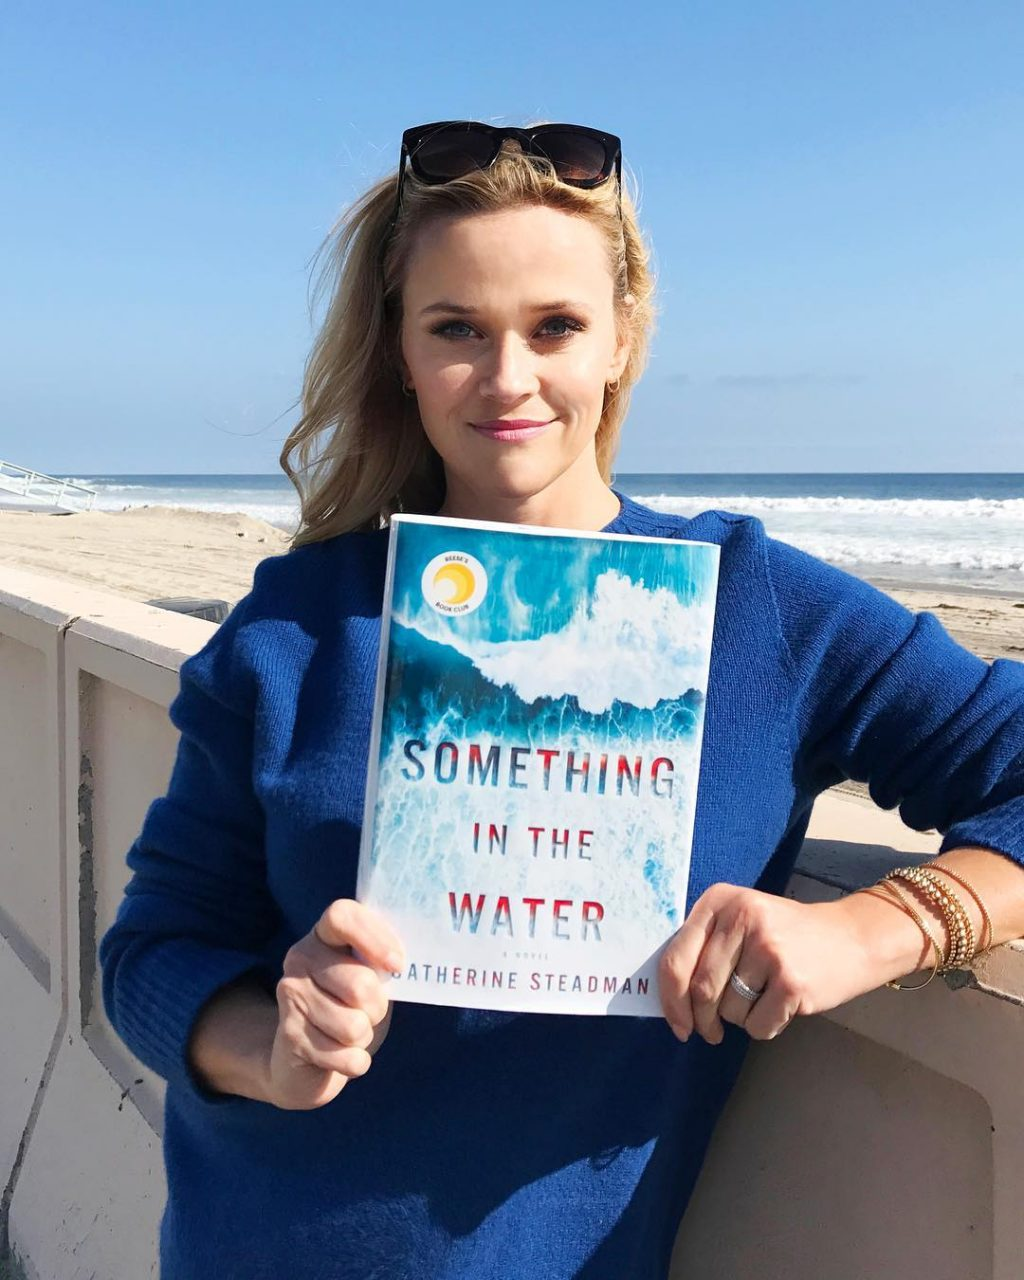 3 Ultra-Compelling, Celebrity-Endorsed Books for Summer